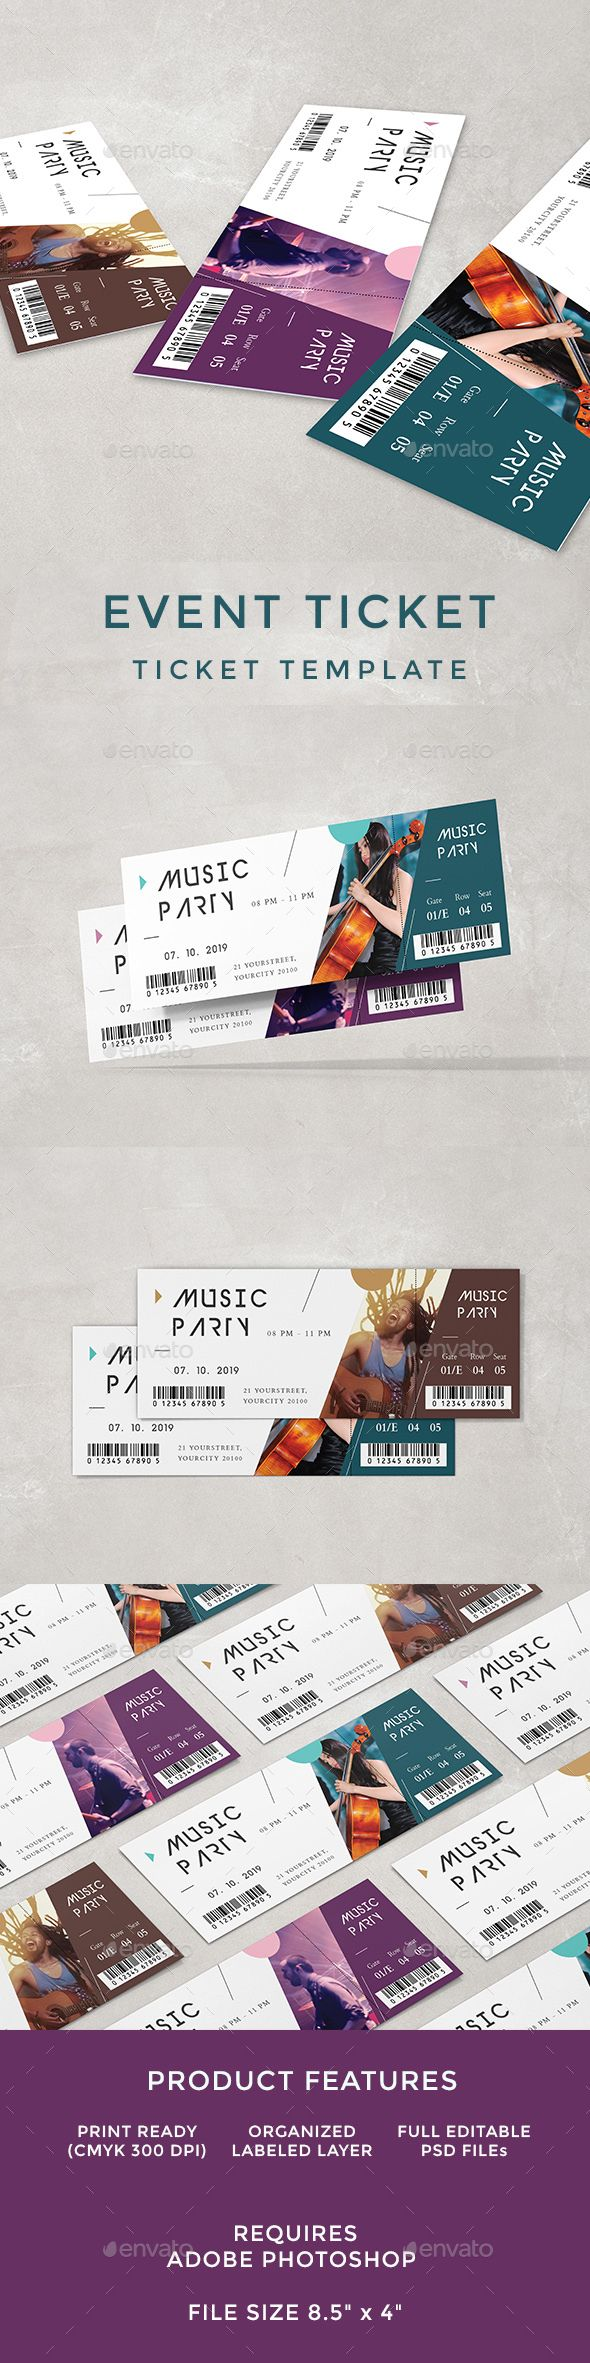 Concert Ticket Template Free Download Magnificent Event Ticket  Event Ticket Print Templates And Template